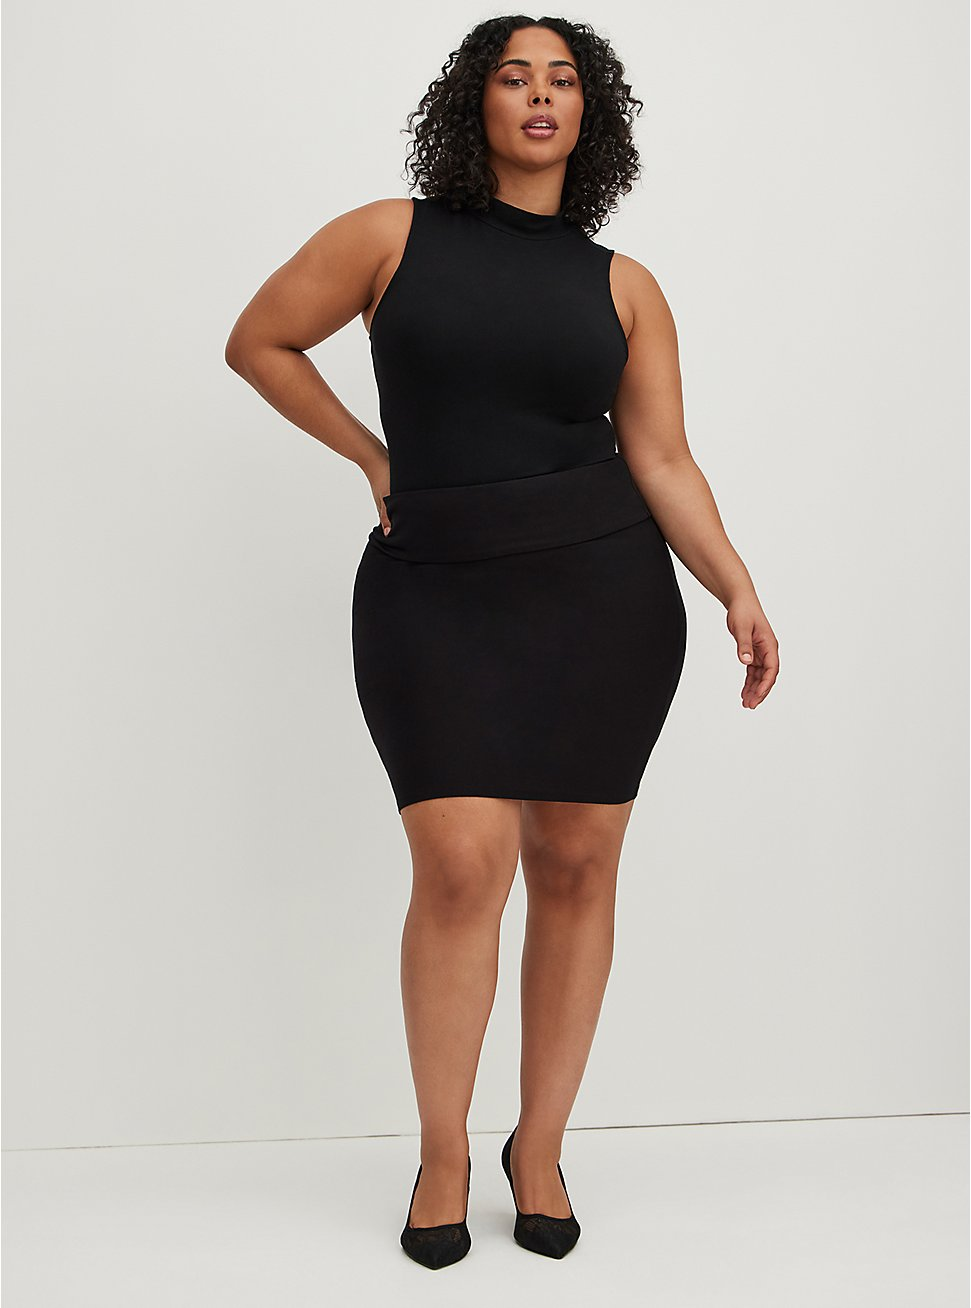 Black Knit Foldover Pencil Skirt, DEEP BLACK, hi-res